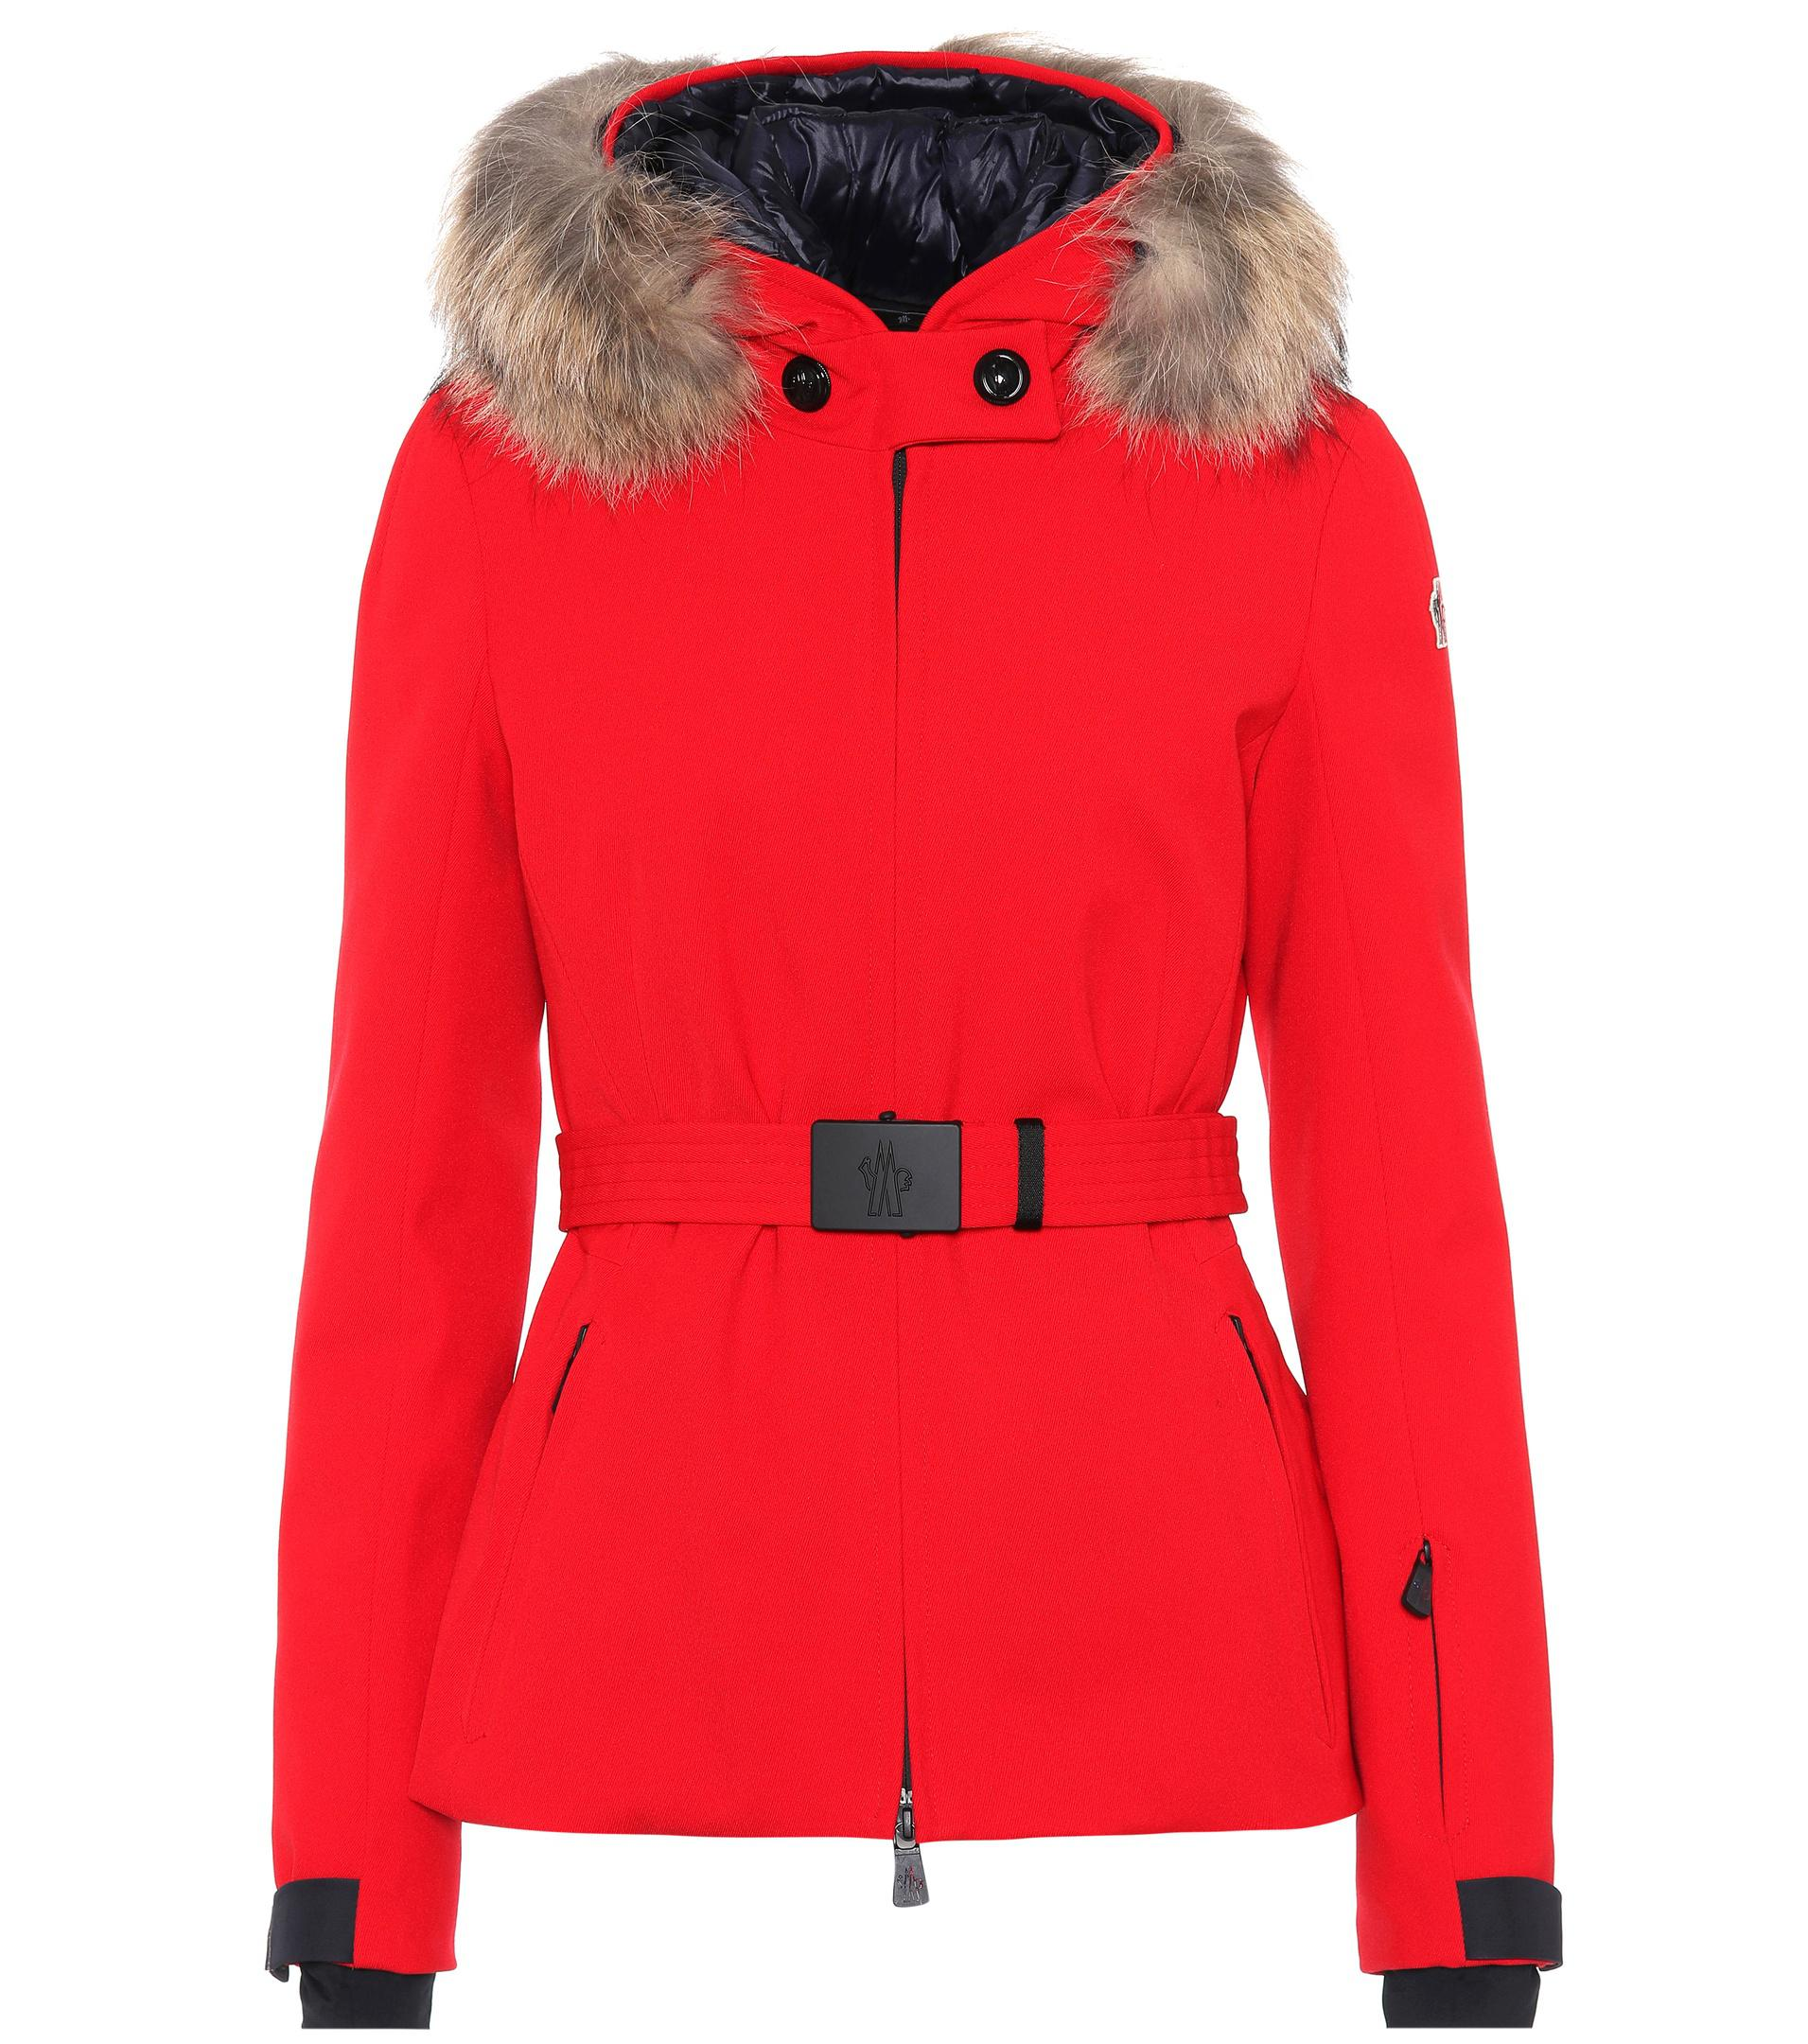 ... free shipping lyst moncler grenoble bauges fur trimmed ski jacket in  red 9899f 26ea4 0c797a32c